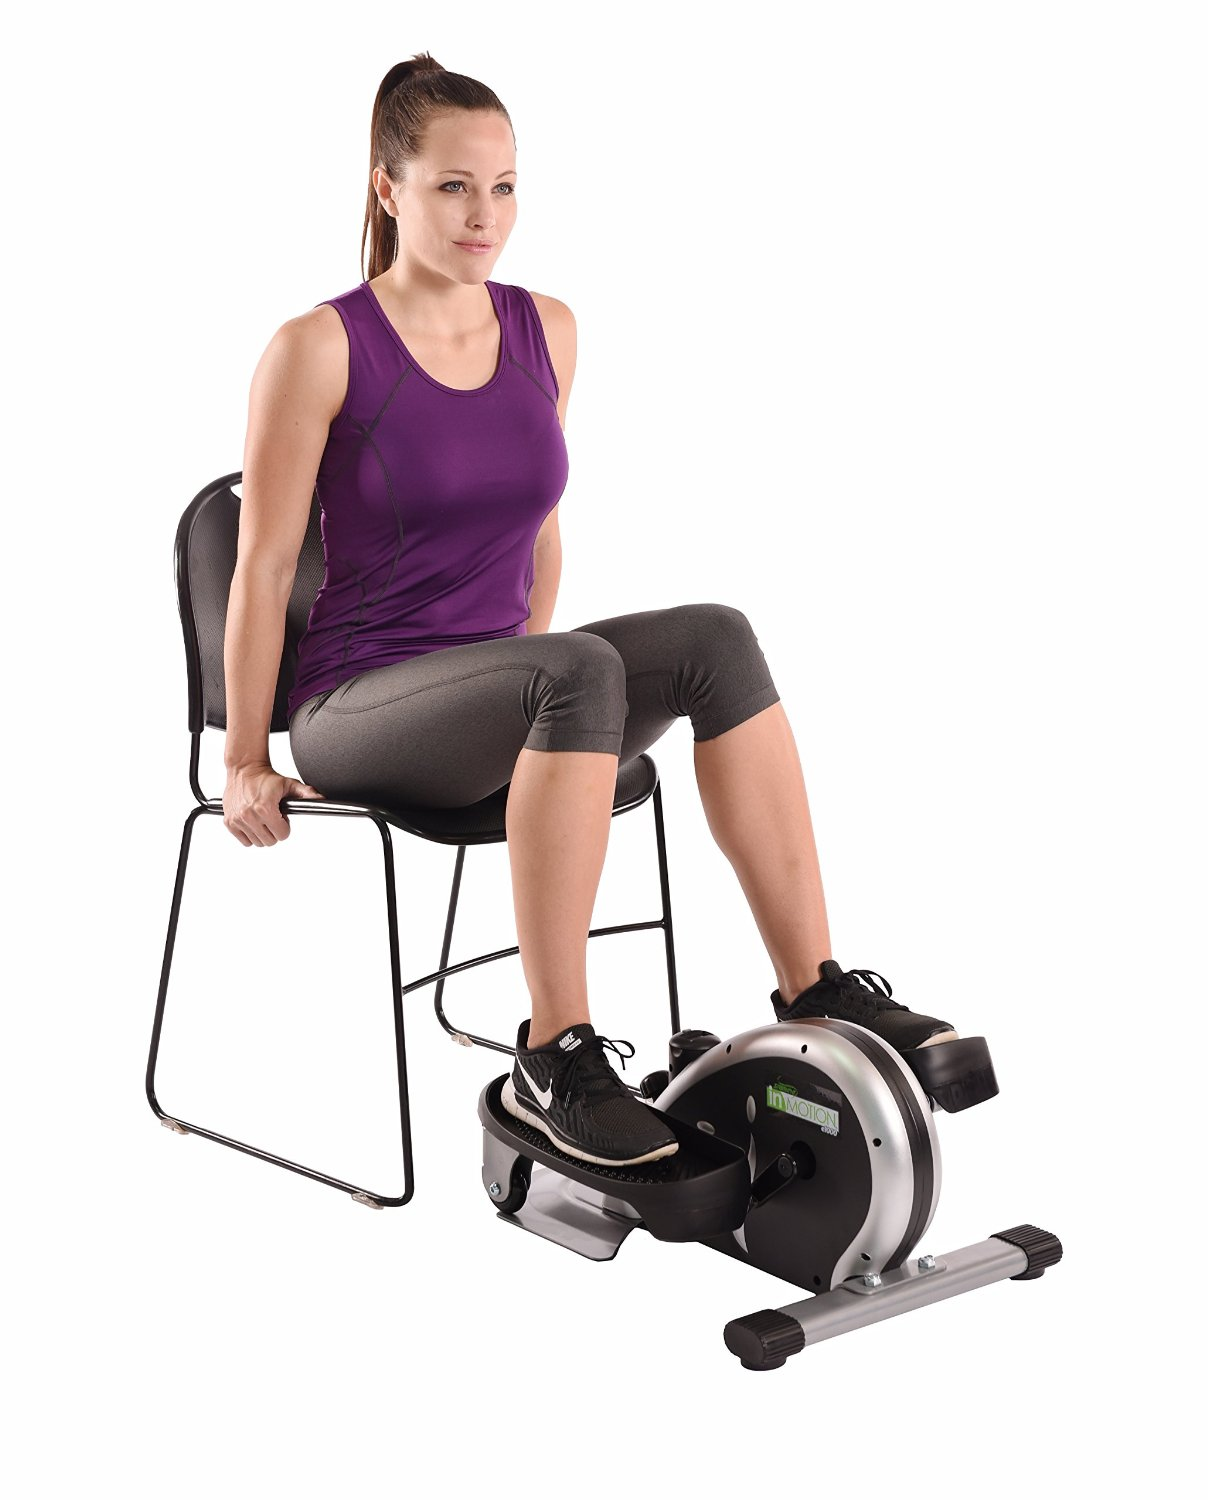 Stamina 55-1610 InMotion E1000 Elliptical Trainer Review with comparison